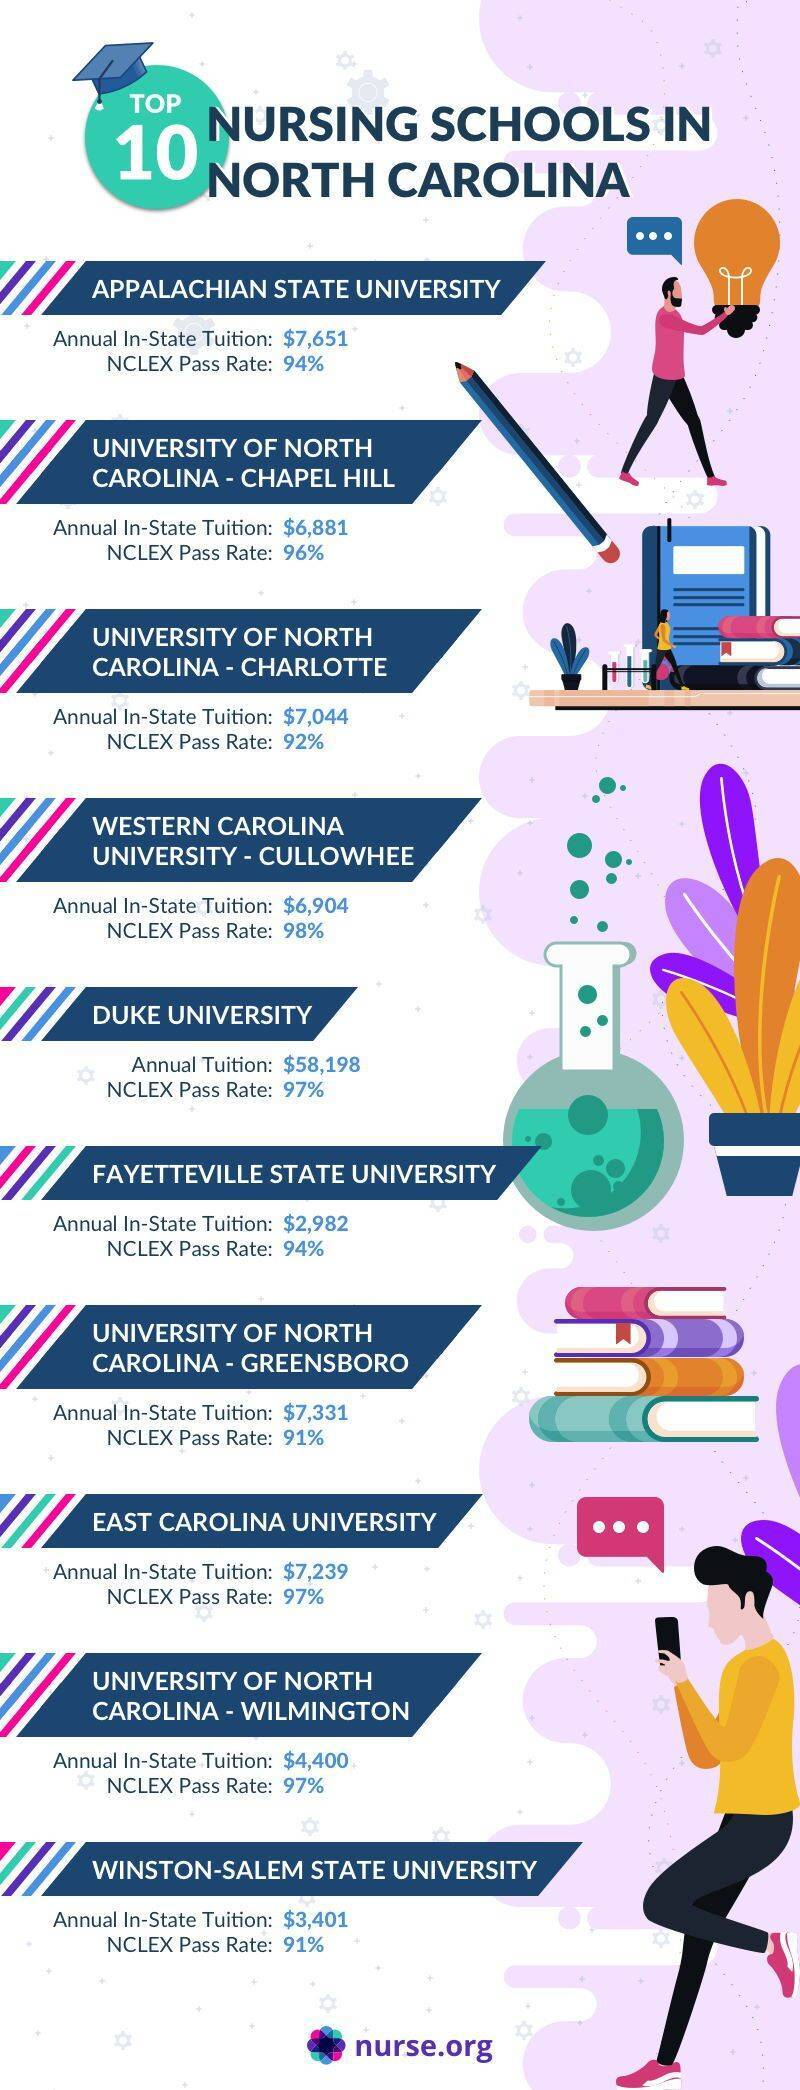 Infographic comparing the top nursing schools in North Carolina